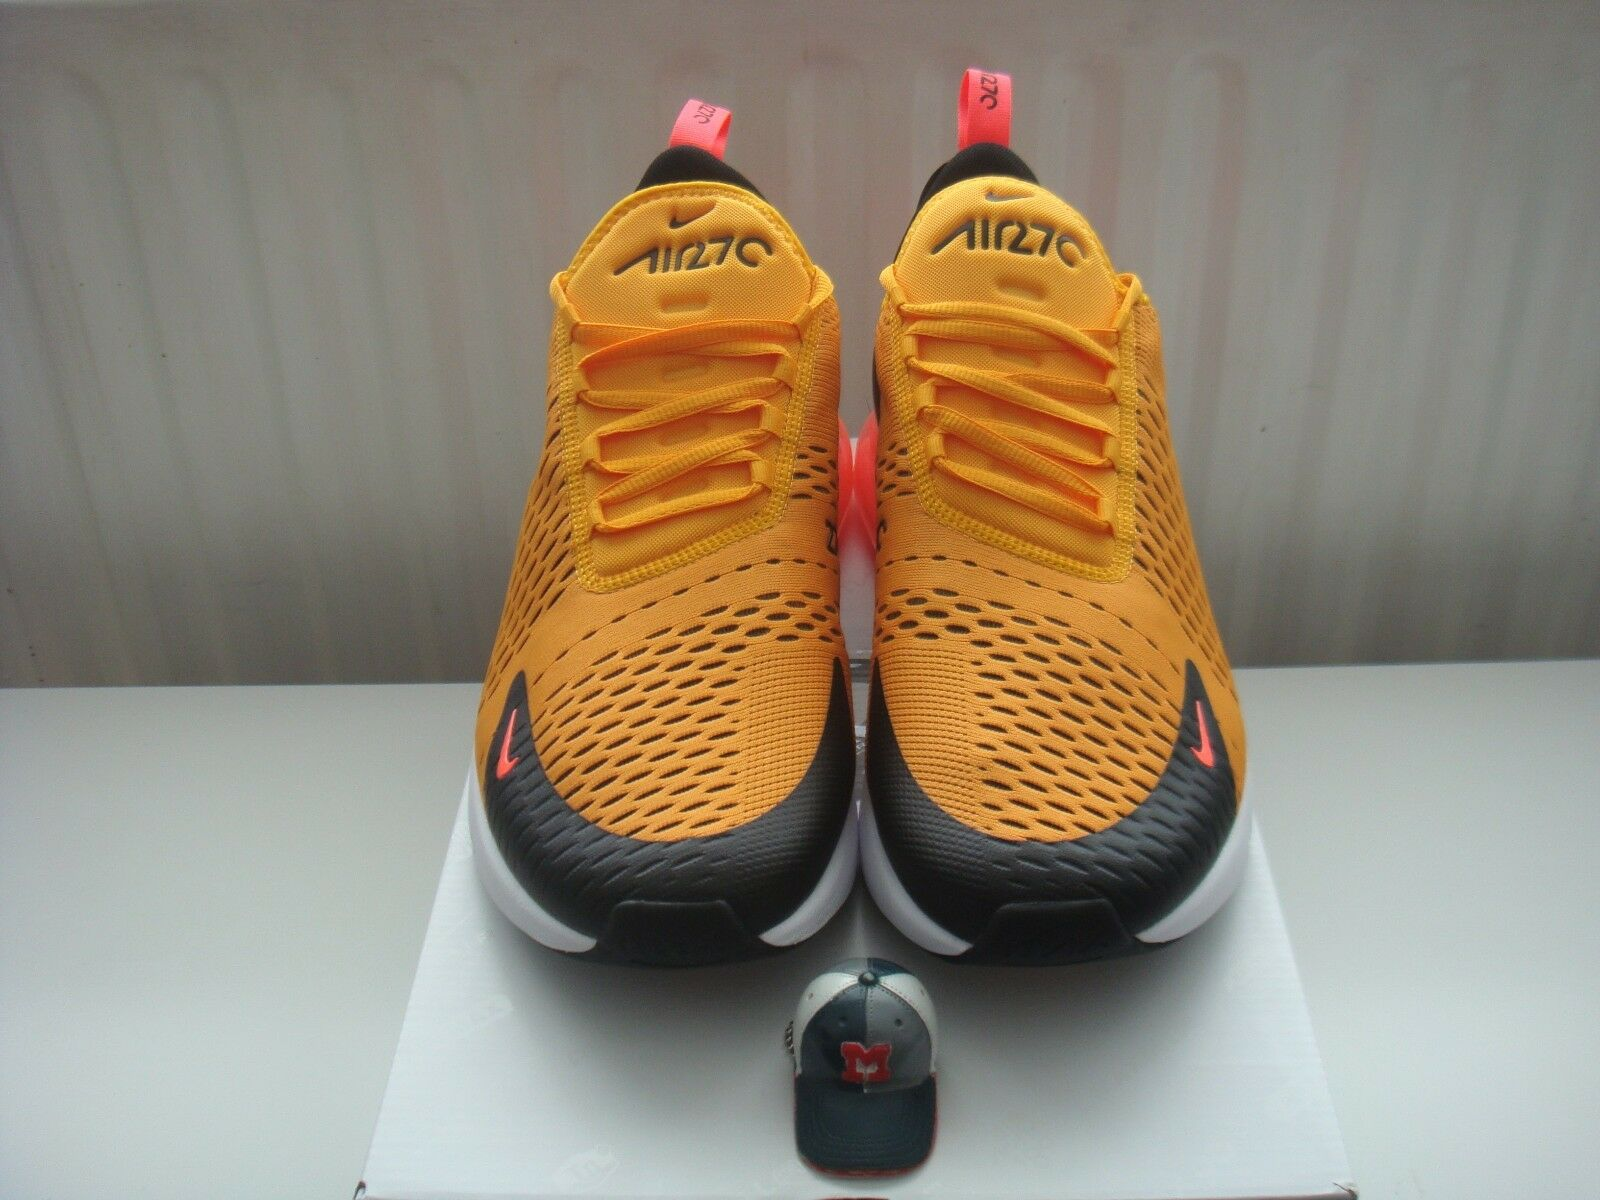 Nike Max 270 Tigre nos 13 UK Air oro 12 12 12 Punzon Hot Wotherspoon animales 1 97 95 a81fb0